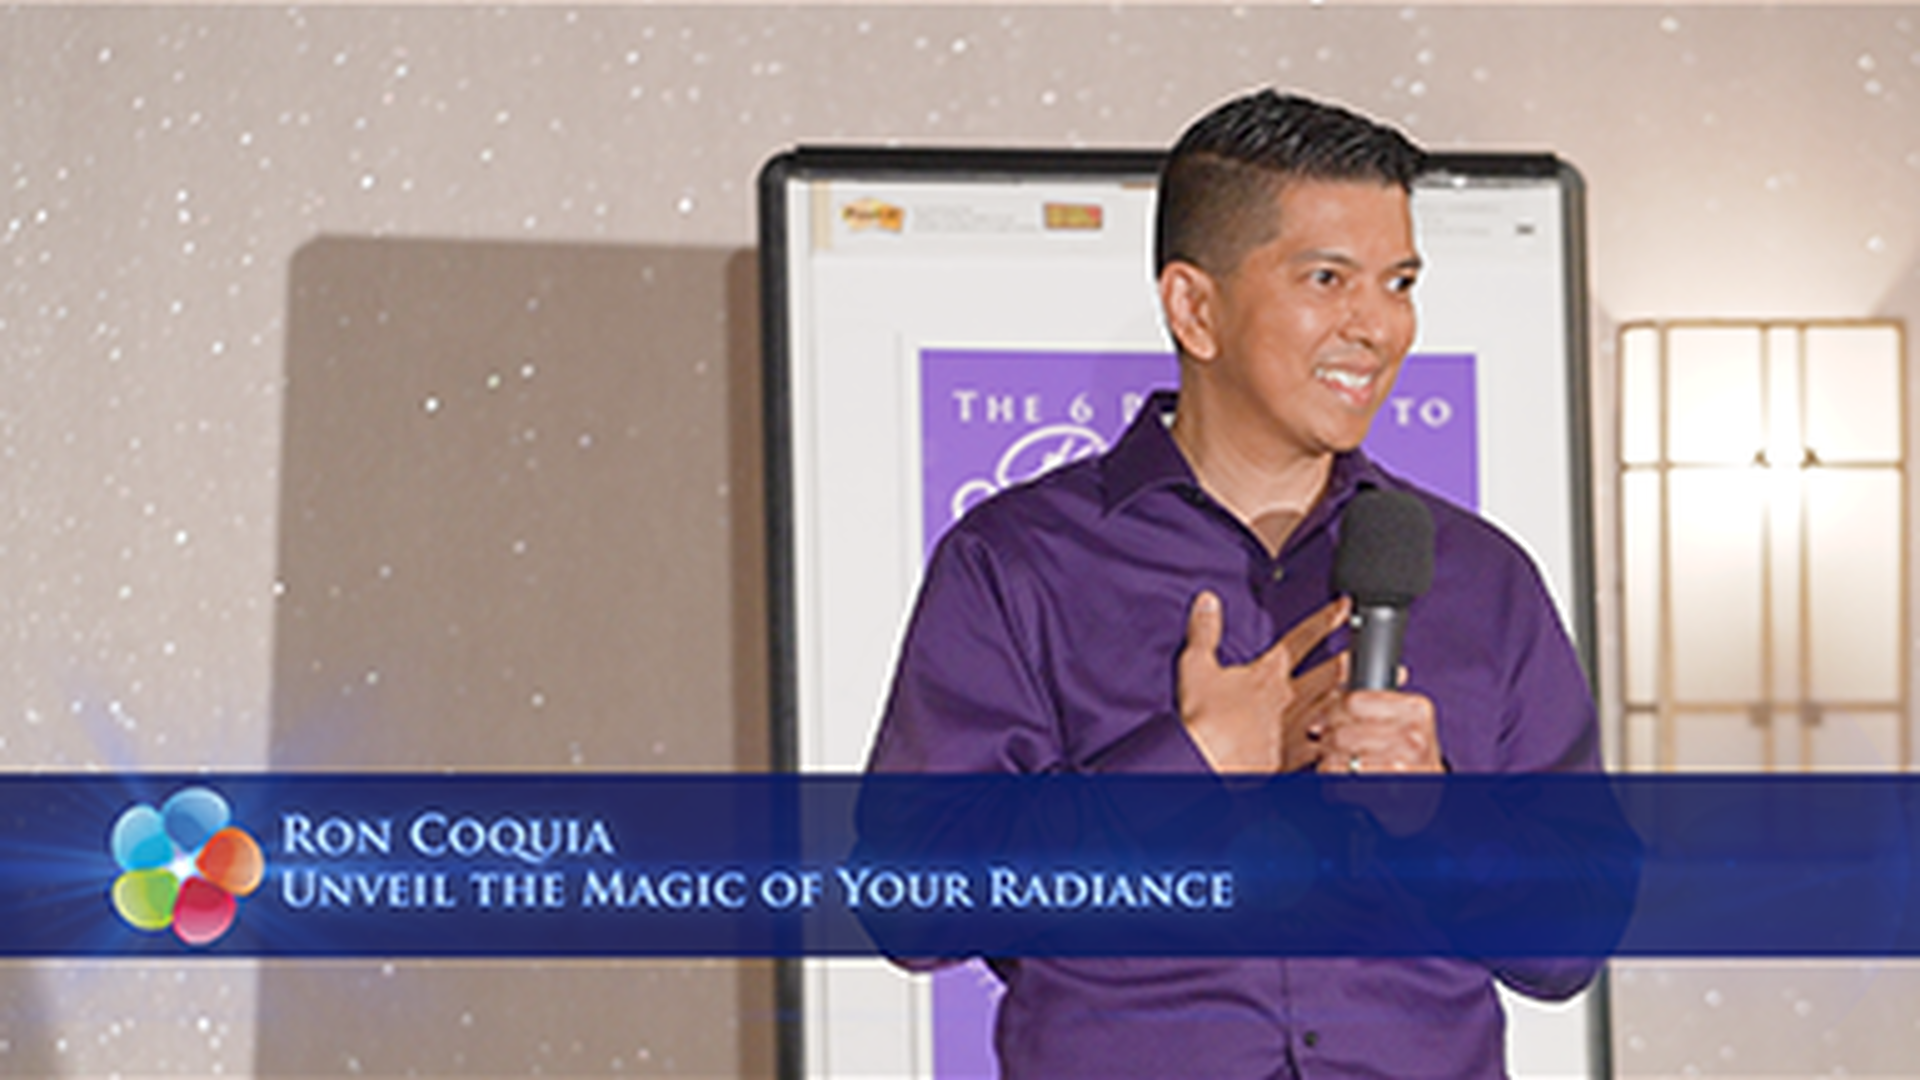 Unveil the Magic of Your Radiance